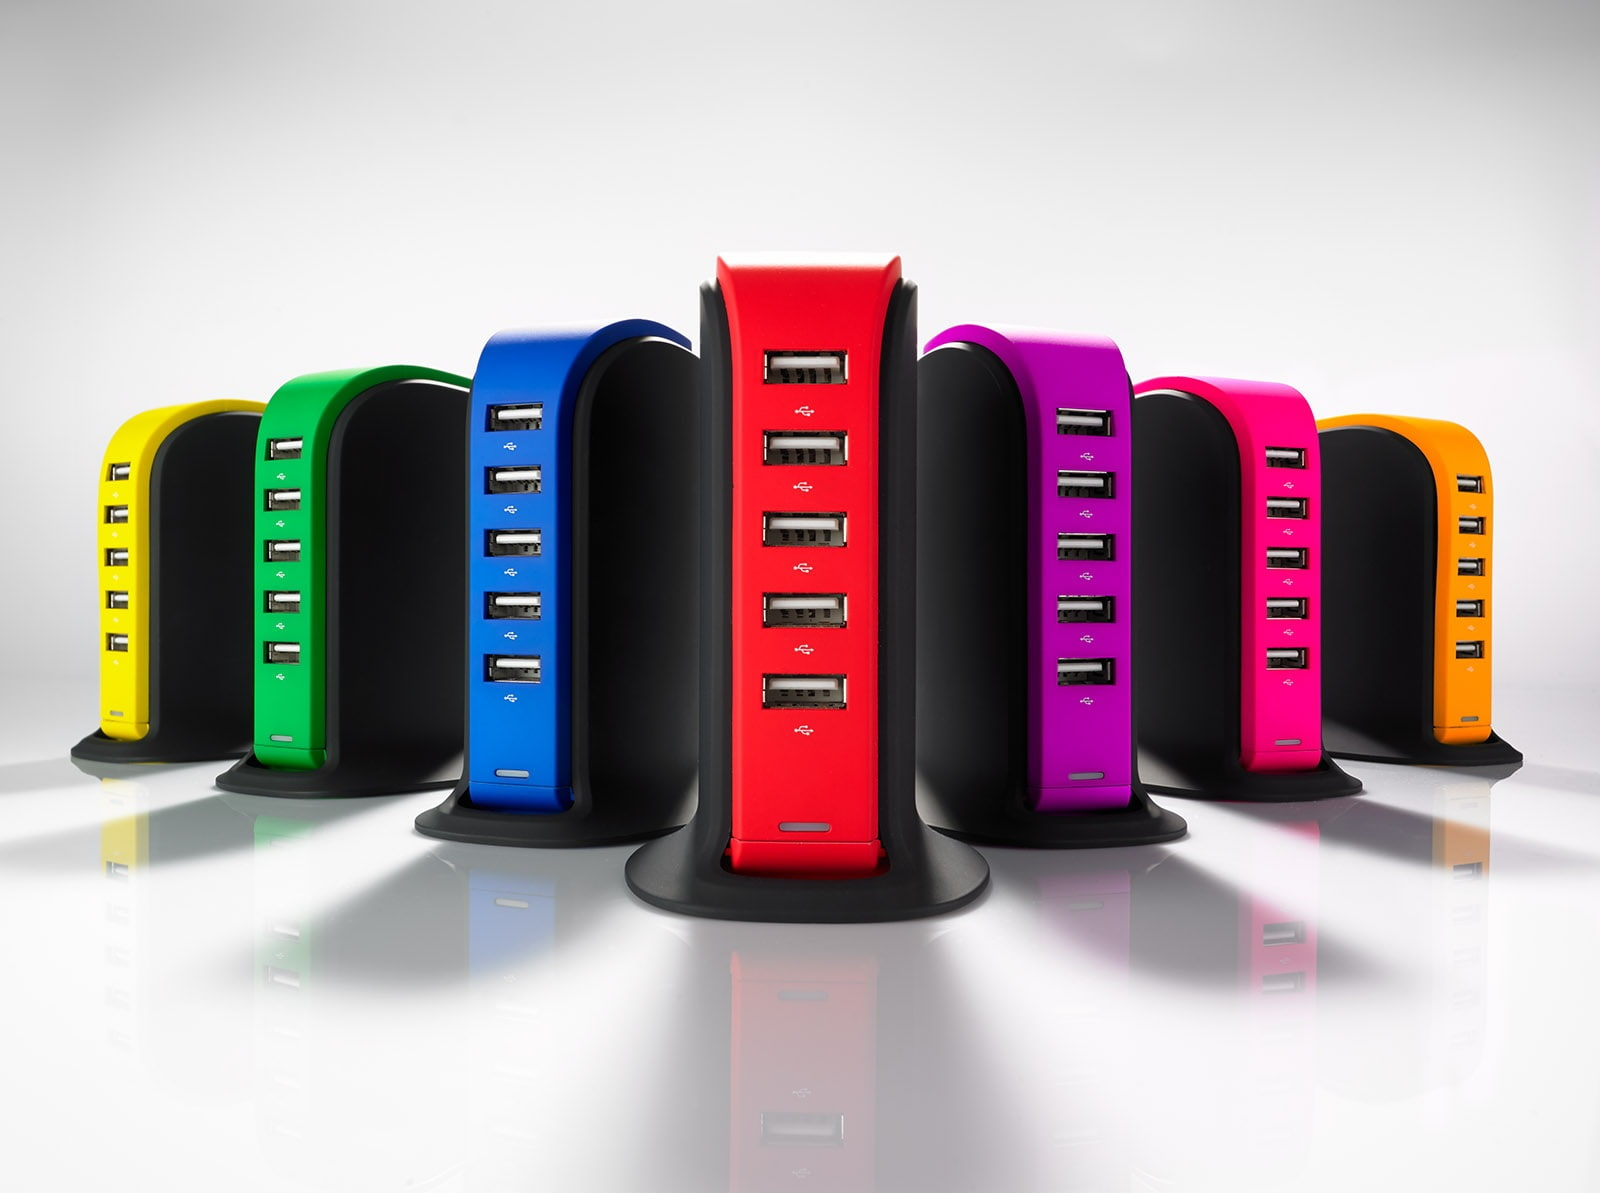 Desk Charger Power Tower Pt50 The Charging Station With 5 Usb Ports